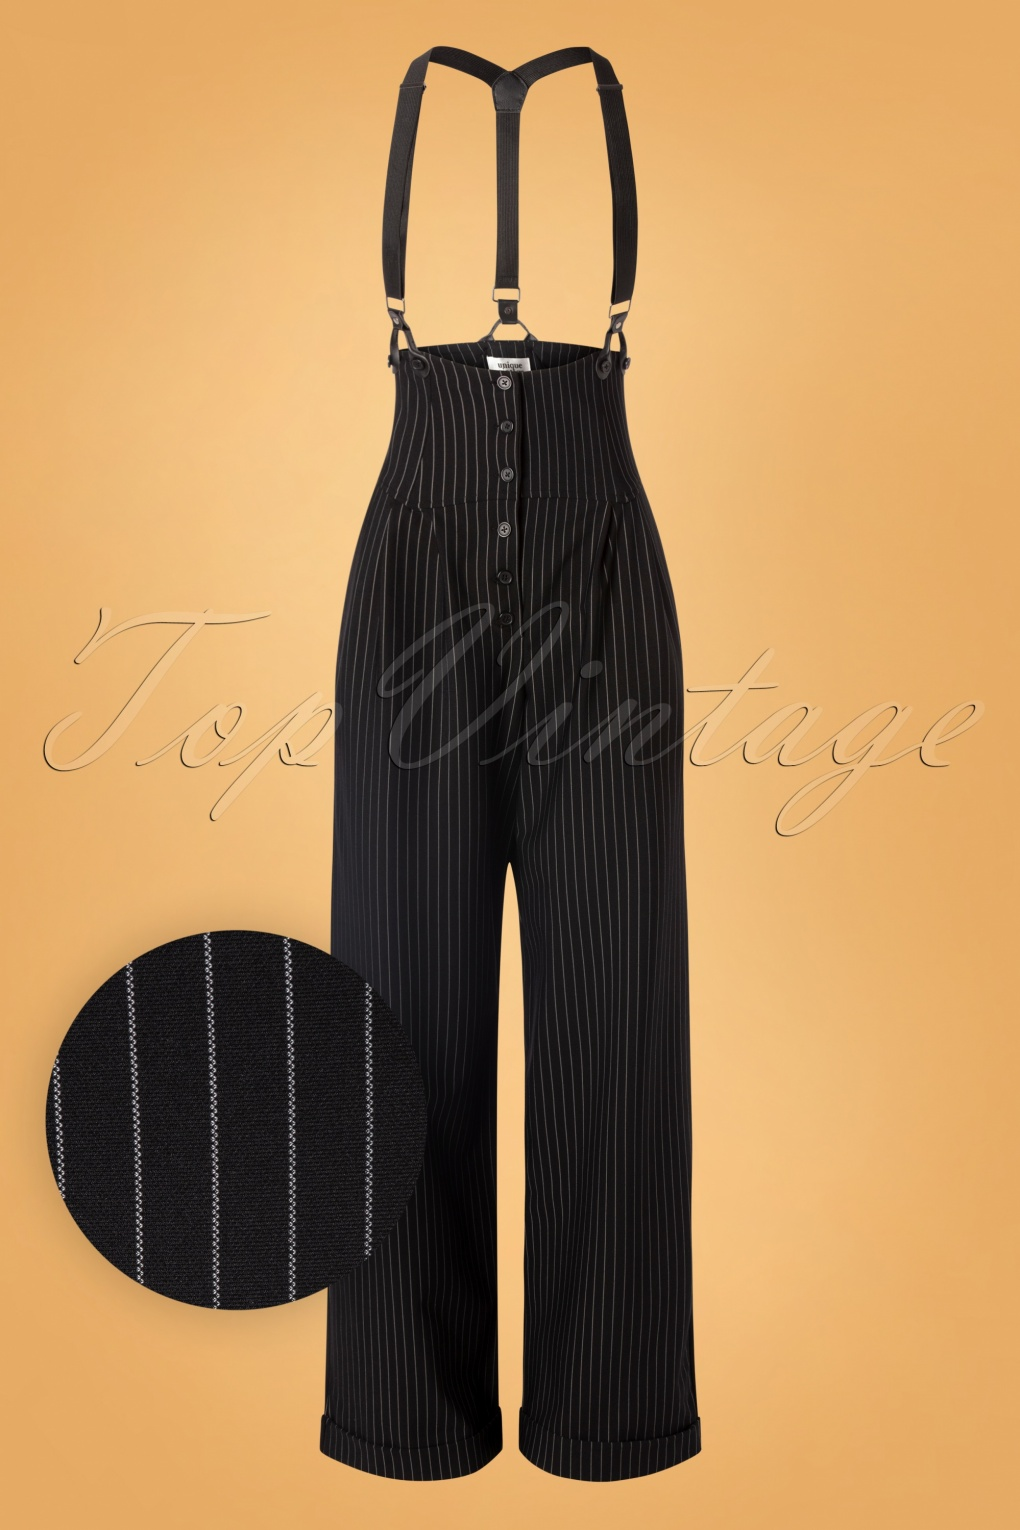 Vintage High Waisted Trousers, Sailor Pants, Jeans 30s Thelma Pinstripe Trousers in Black £107.47 AT vintagedancer.com